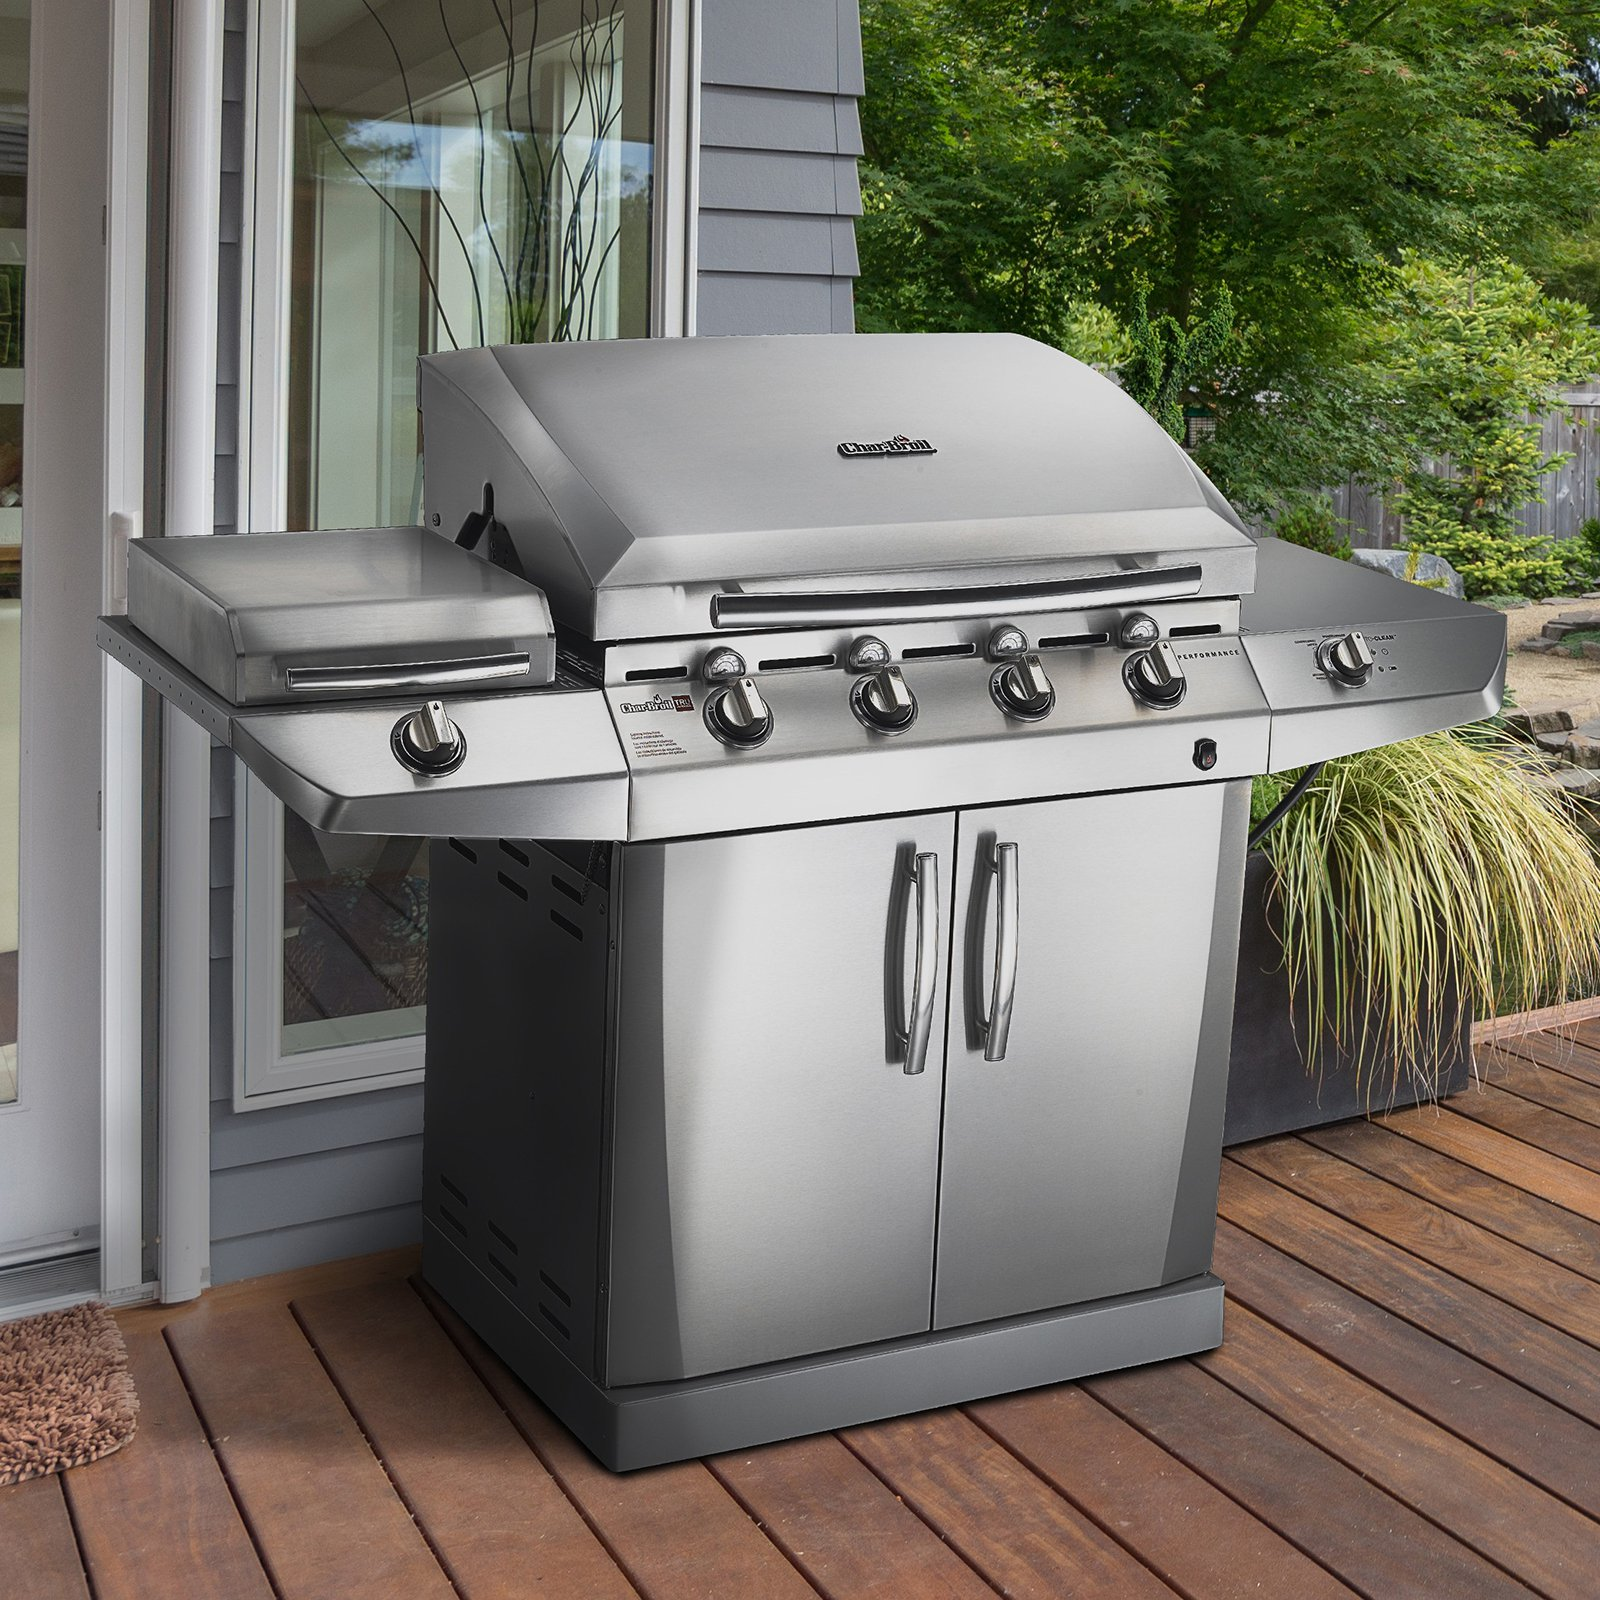 Char-Broil Performance T-47D Tru Infrared Gas Grill with Auto Clean